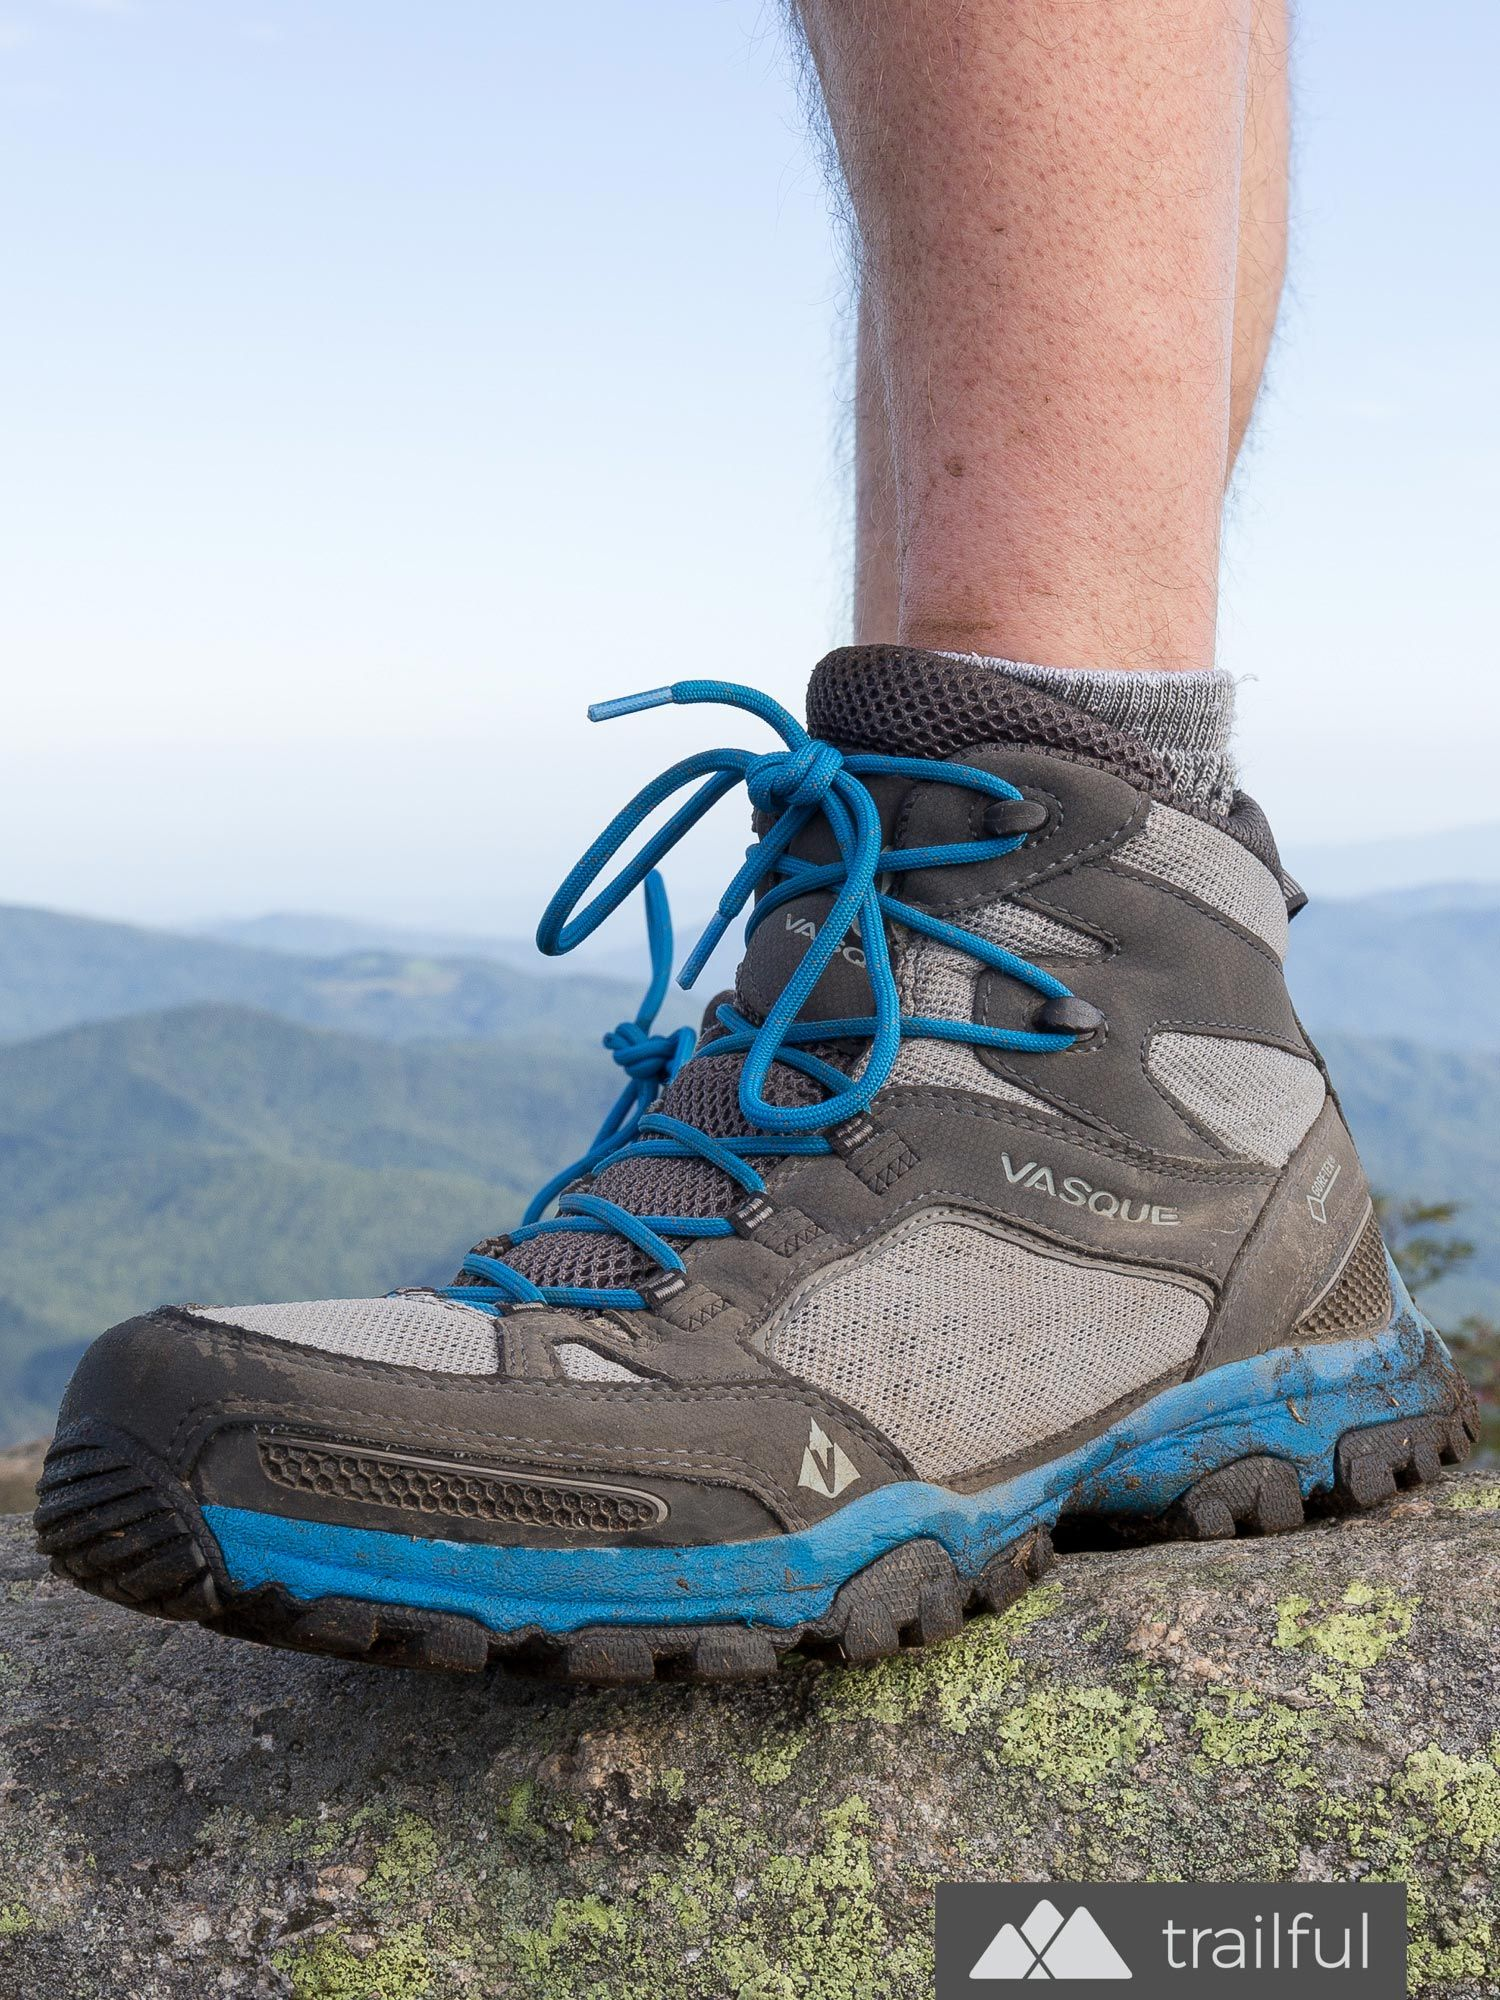 breathable waterproof hiking boots